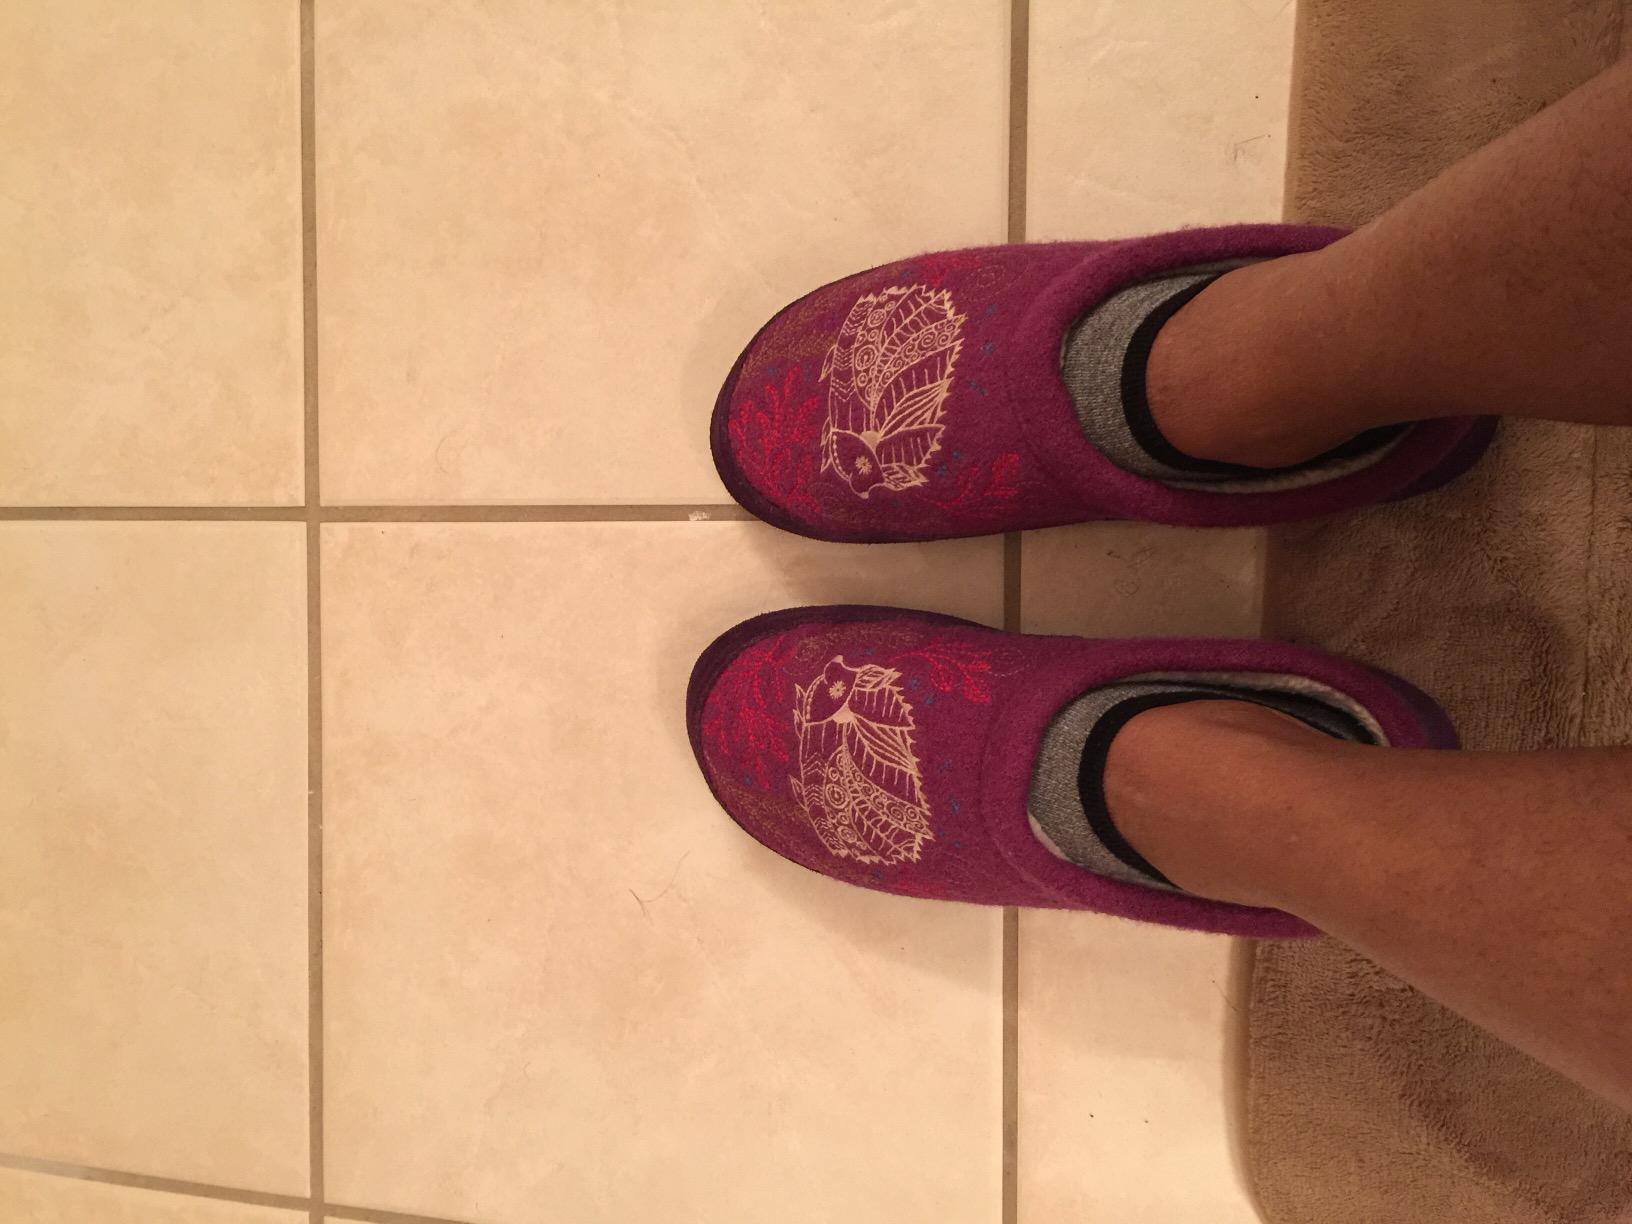 3aaf66777845 I ve been wearing the forest purple hedgehog slippers for 3 days and here s  my thoughts on them. They are nice and comfortable. I purchased the XL  9.5-10.5 ...